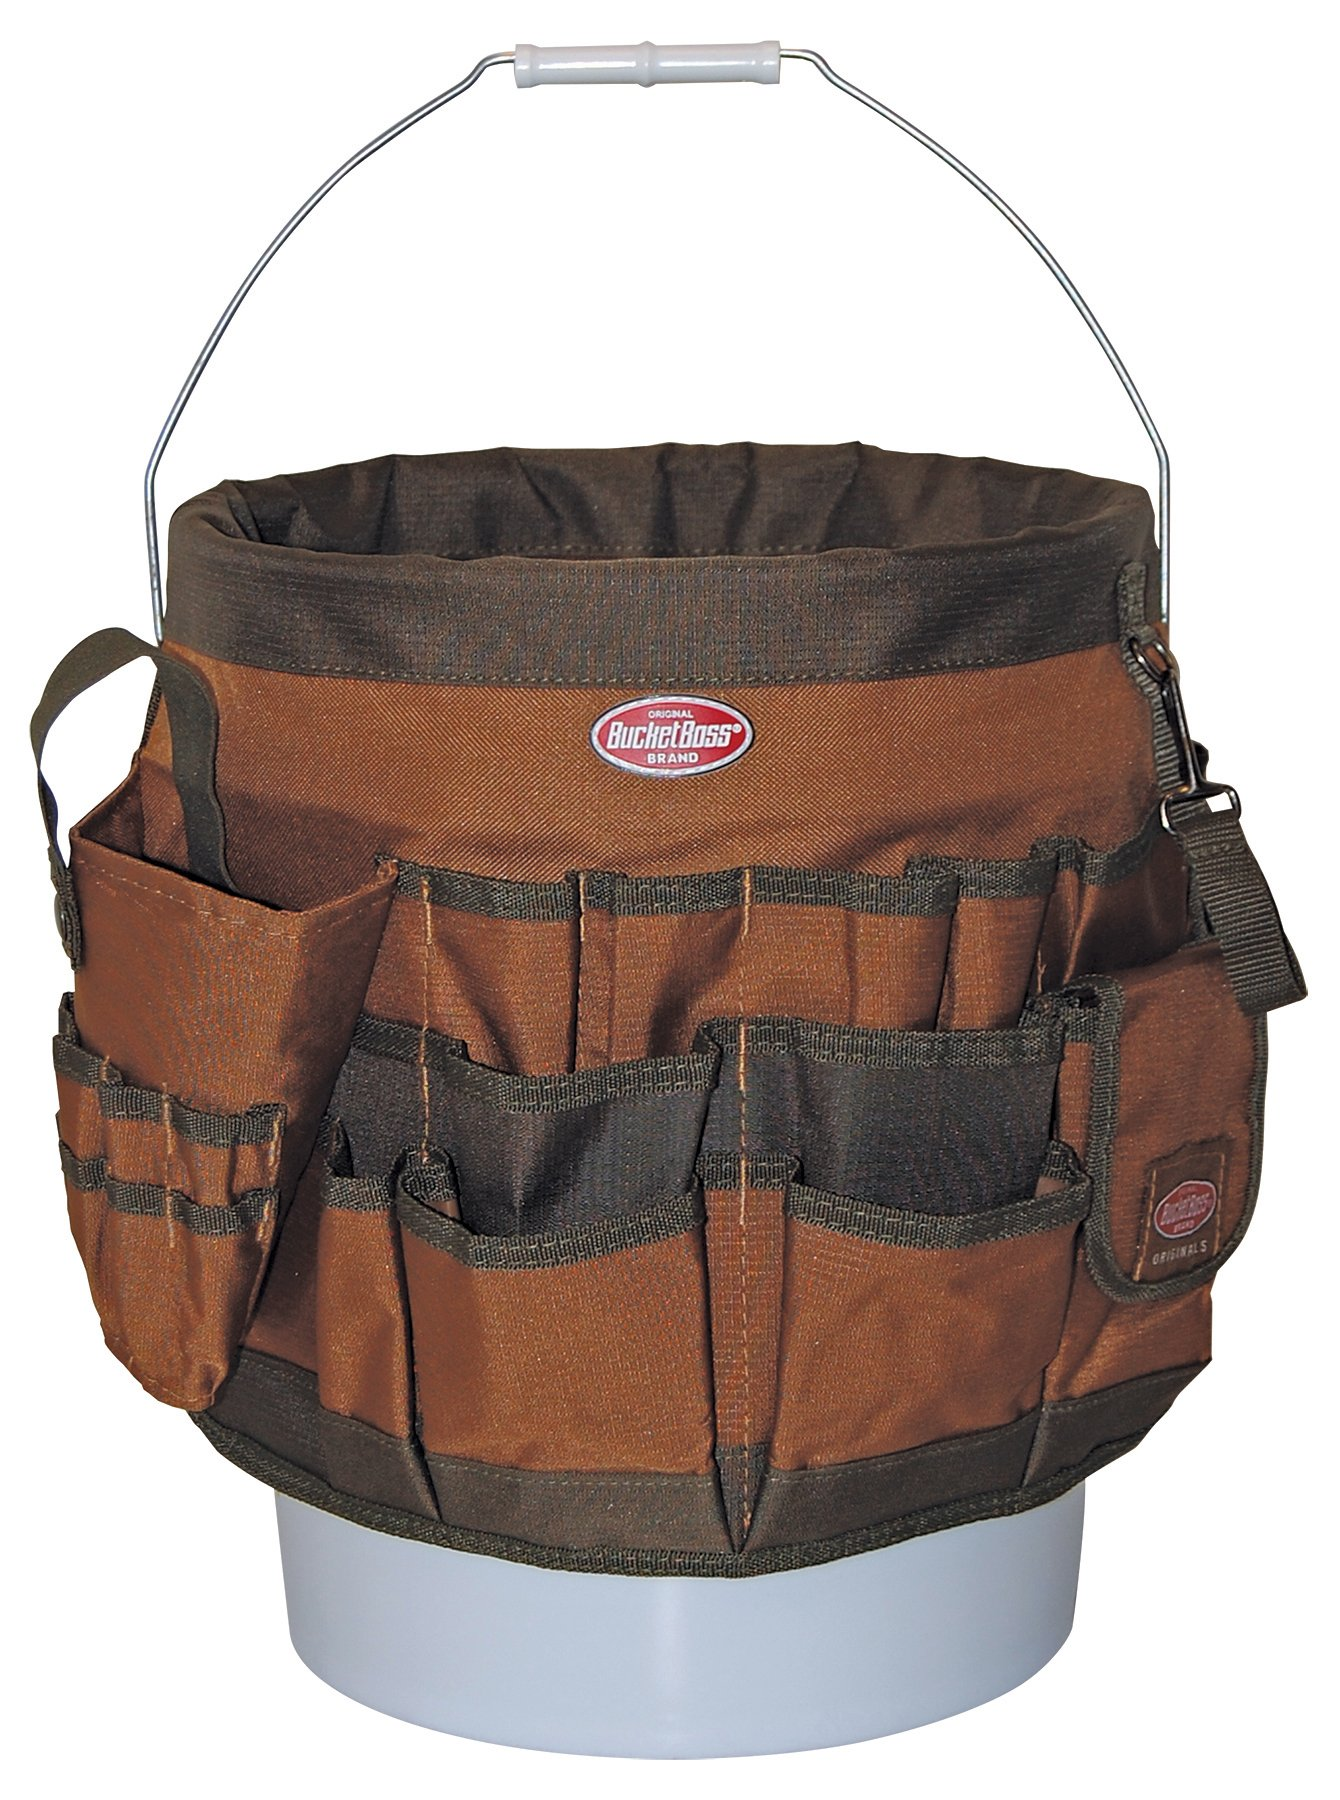 Bucket Boss 56 Bucket Tool Organizer in Brown, 10056 by Bucket Boss (Image #1)